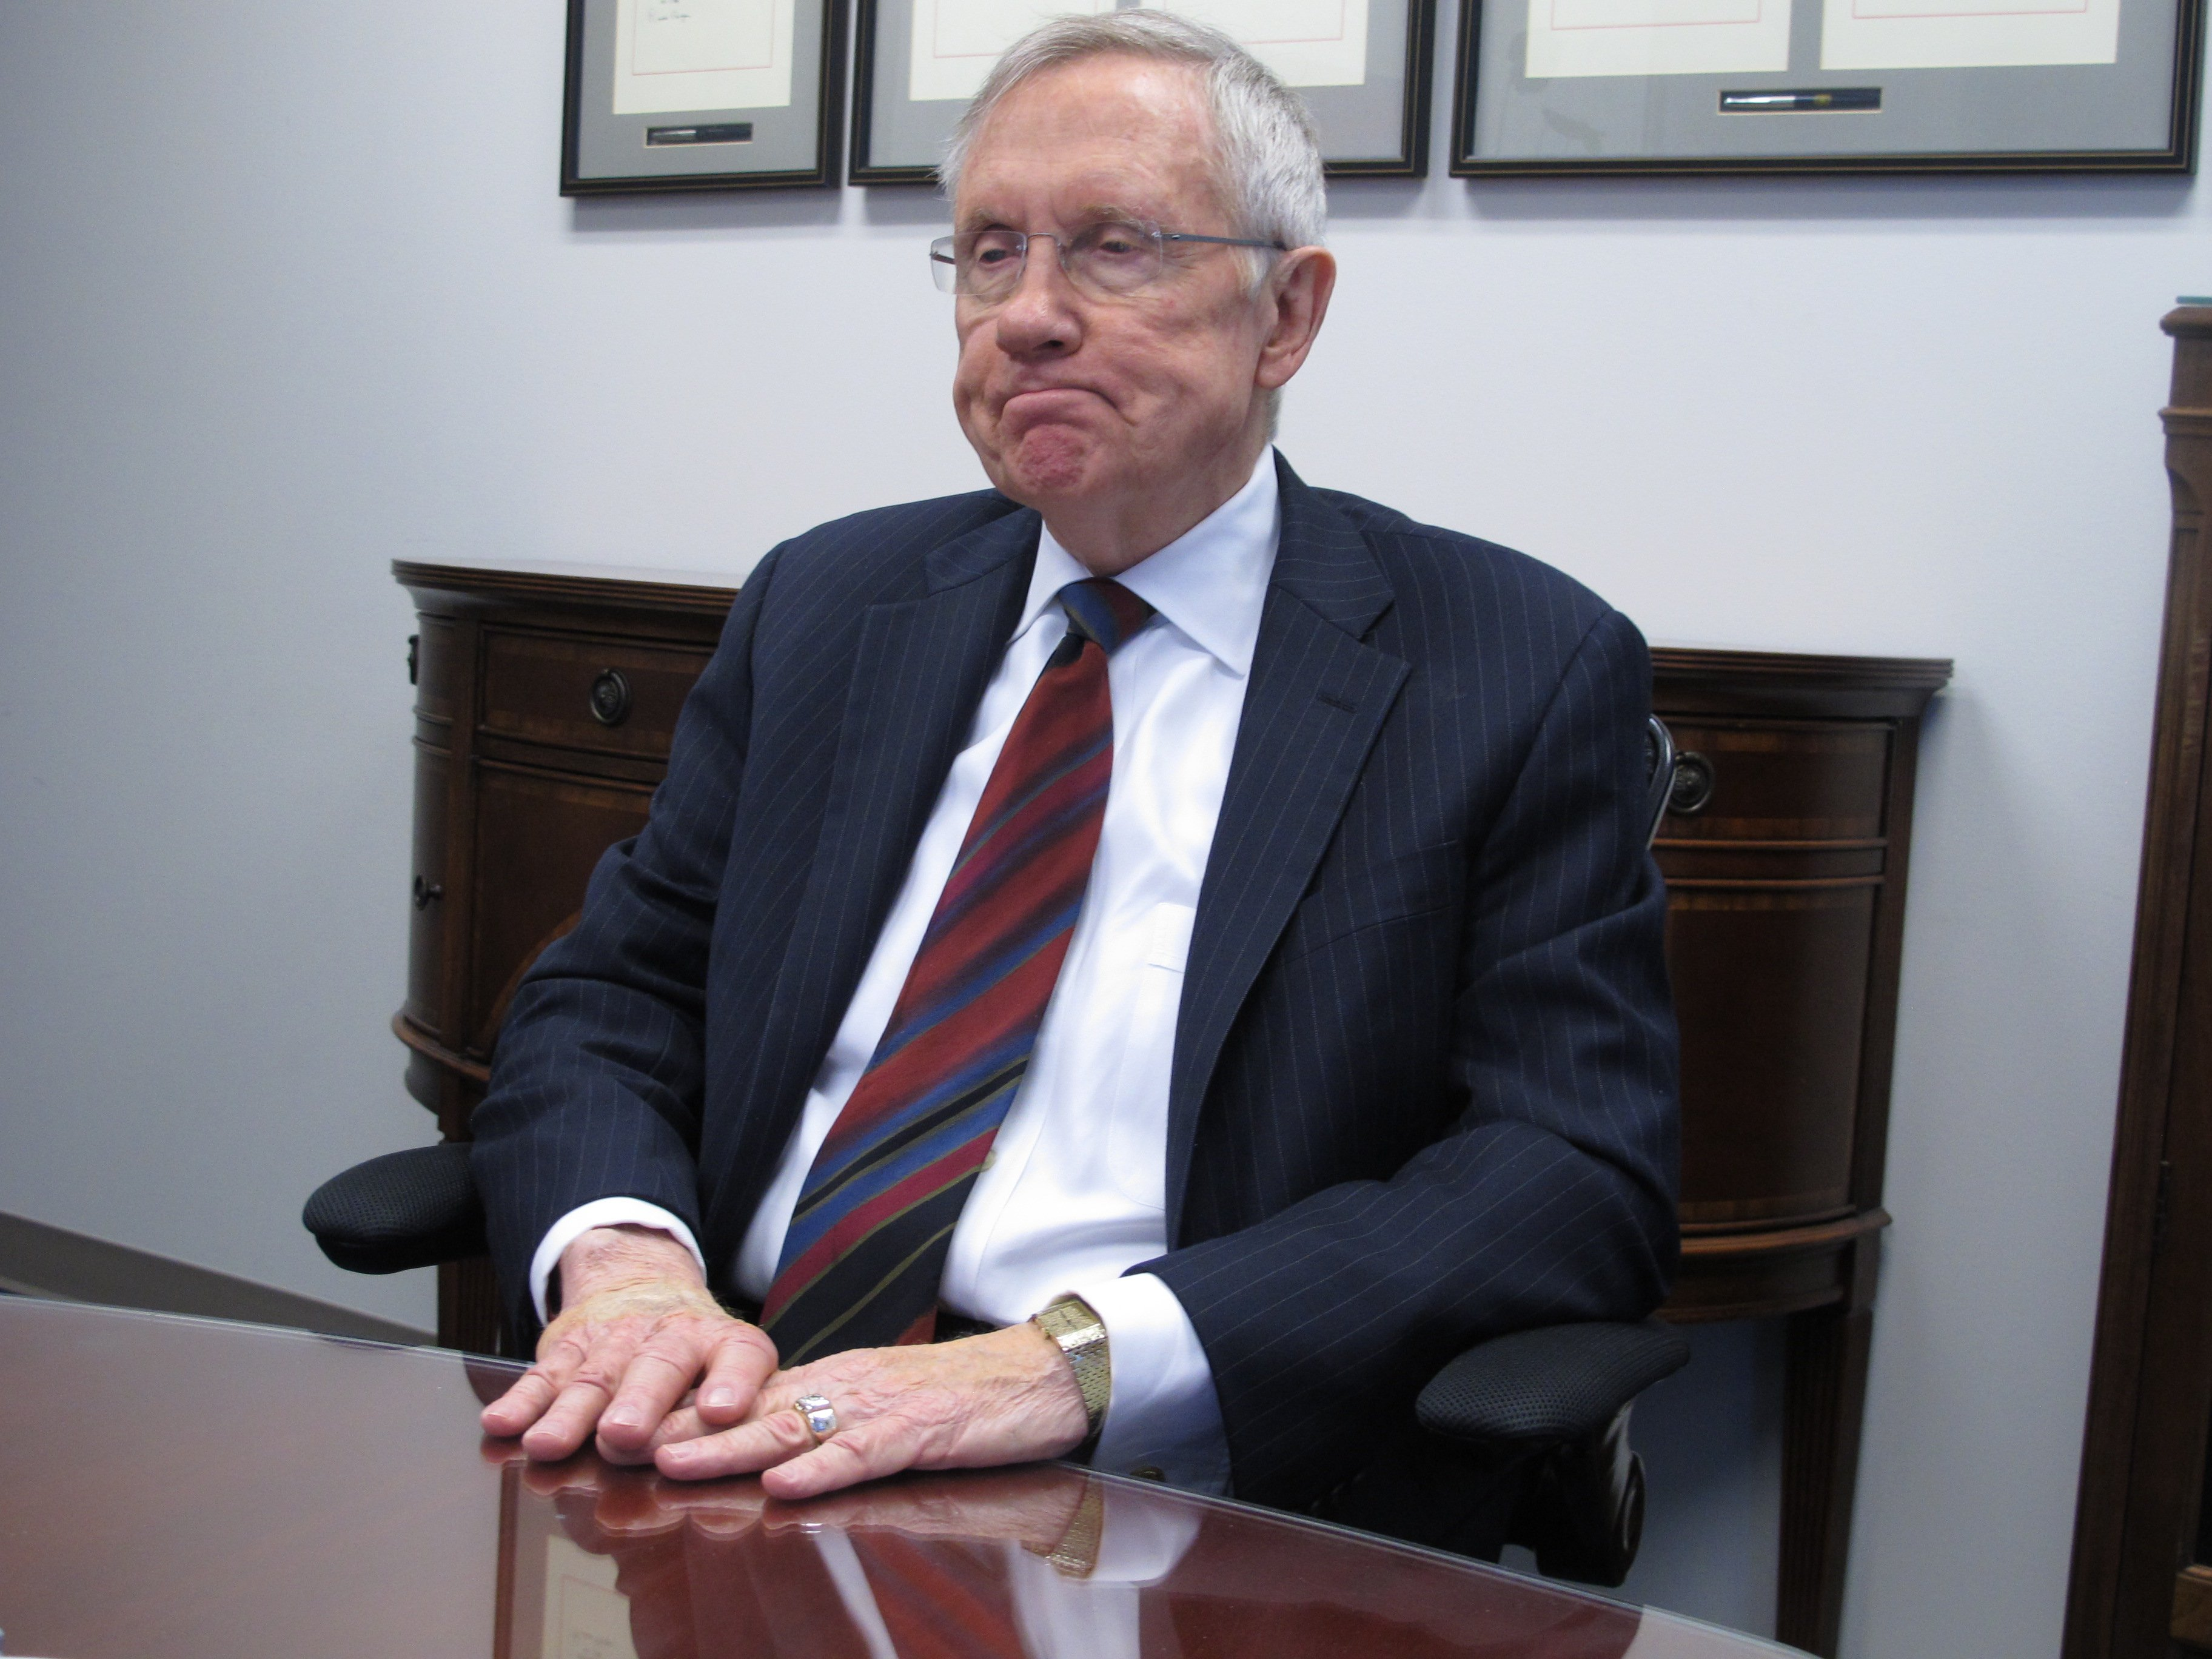 Senate Majority Leader Harry Reid, D-Nev., talks to reporters in his Reno, Nev. office on Monday, Aug. 18, 2014. He said he doesn't intend to waste his time raising money for Democrat Bob Goodman in an unlikely bid to unseat popular Republican Gov. Brian Sandoval in November. (AP Photo/Scott Sonner)